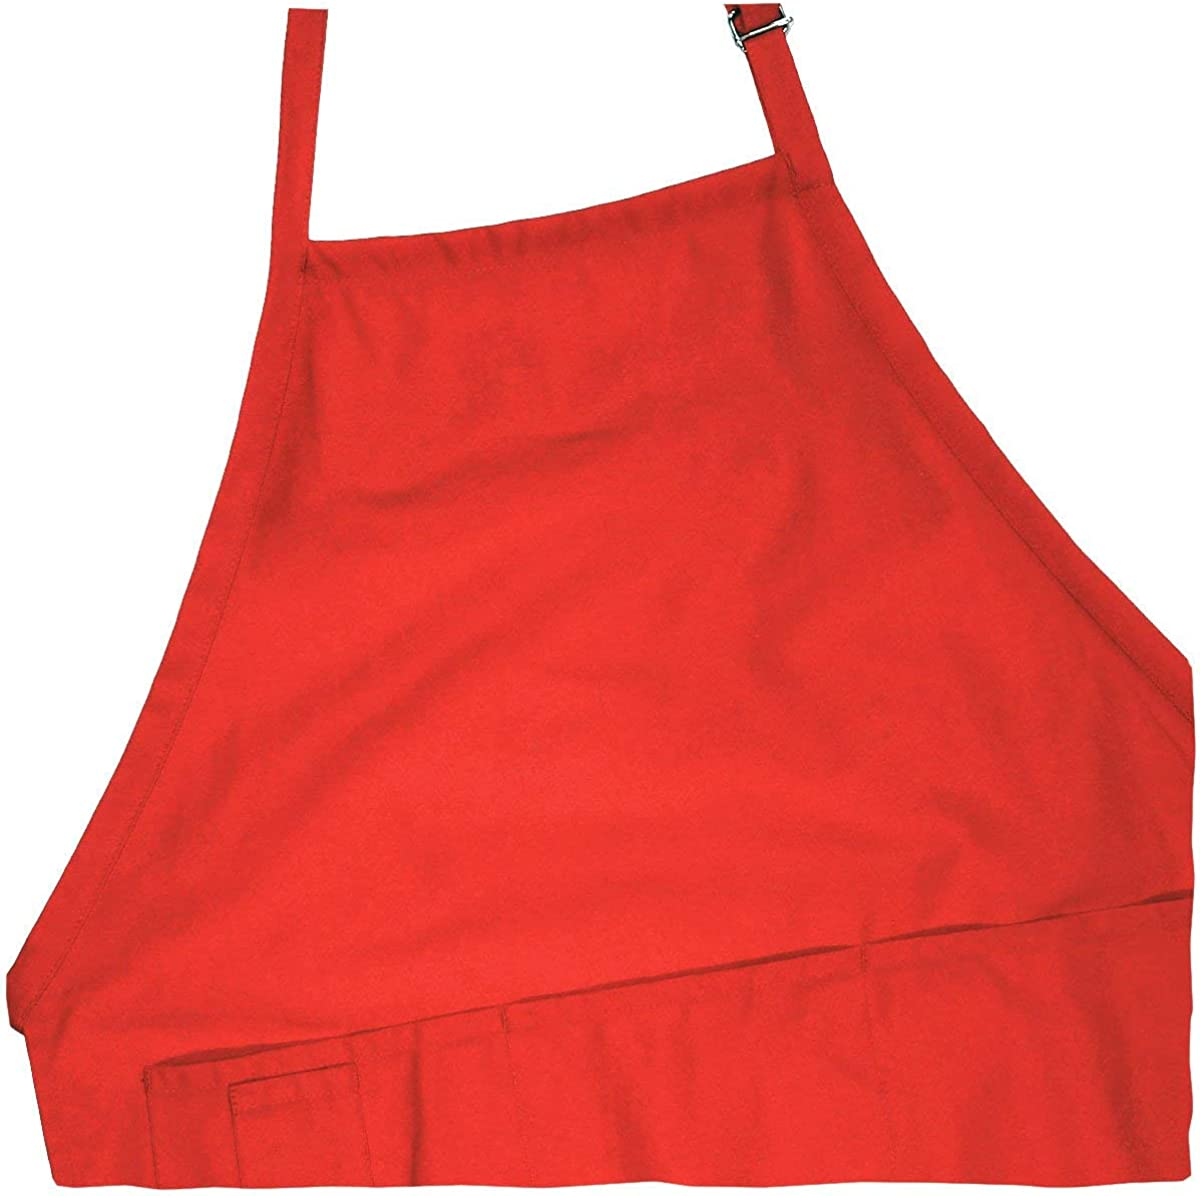 ApronMen - All stores are sold Adjustable Oklahoma City Mall BBQ Grill for Apron One Size Men